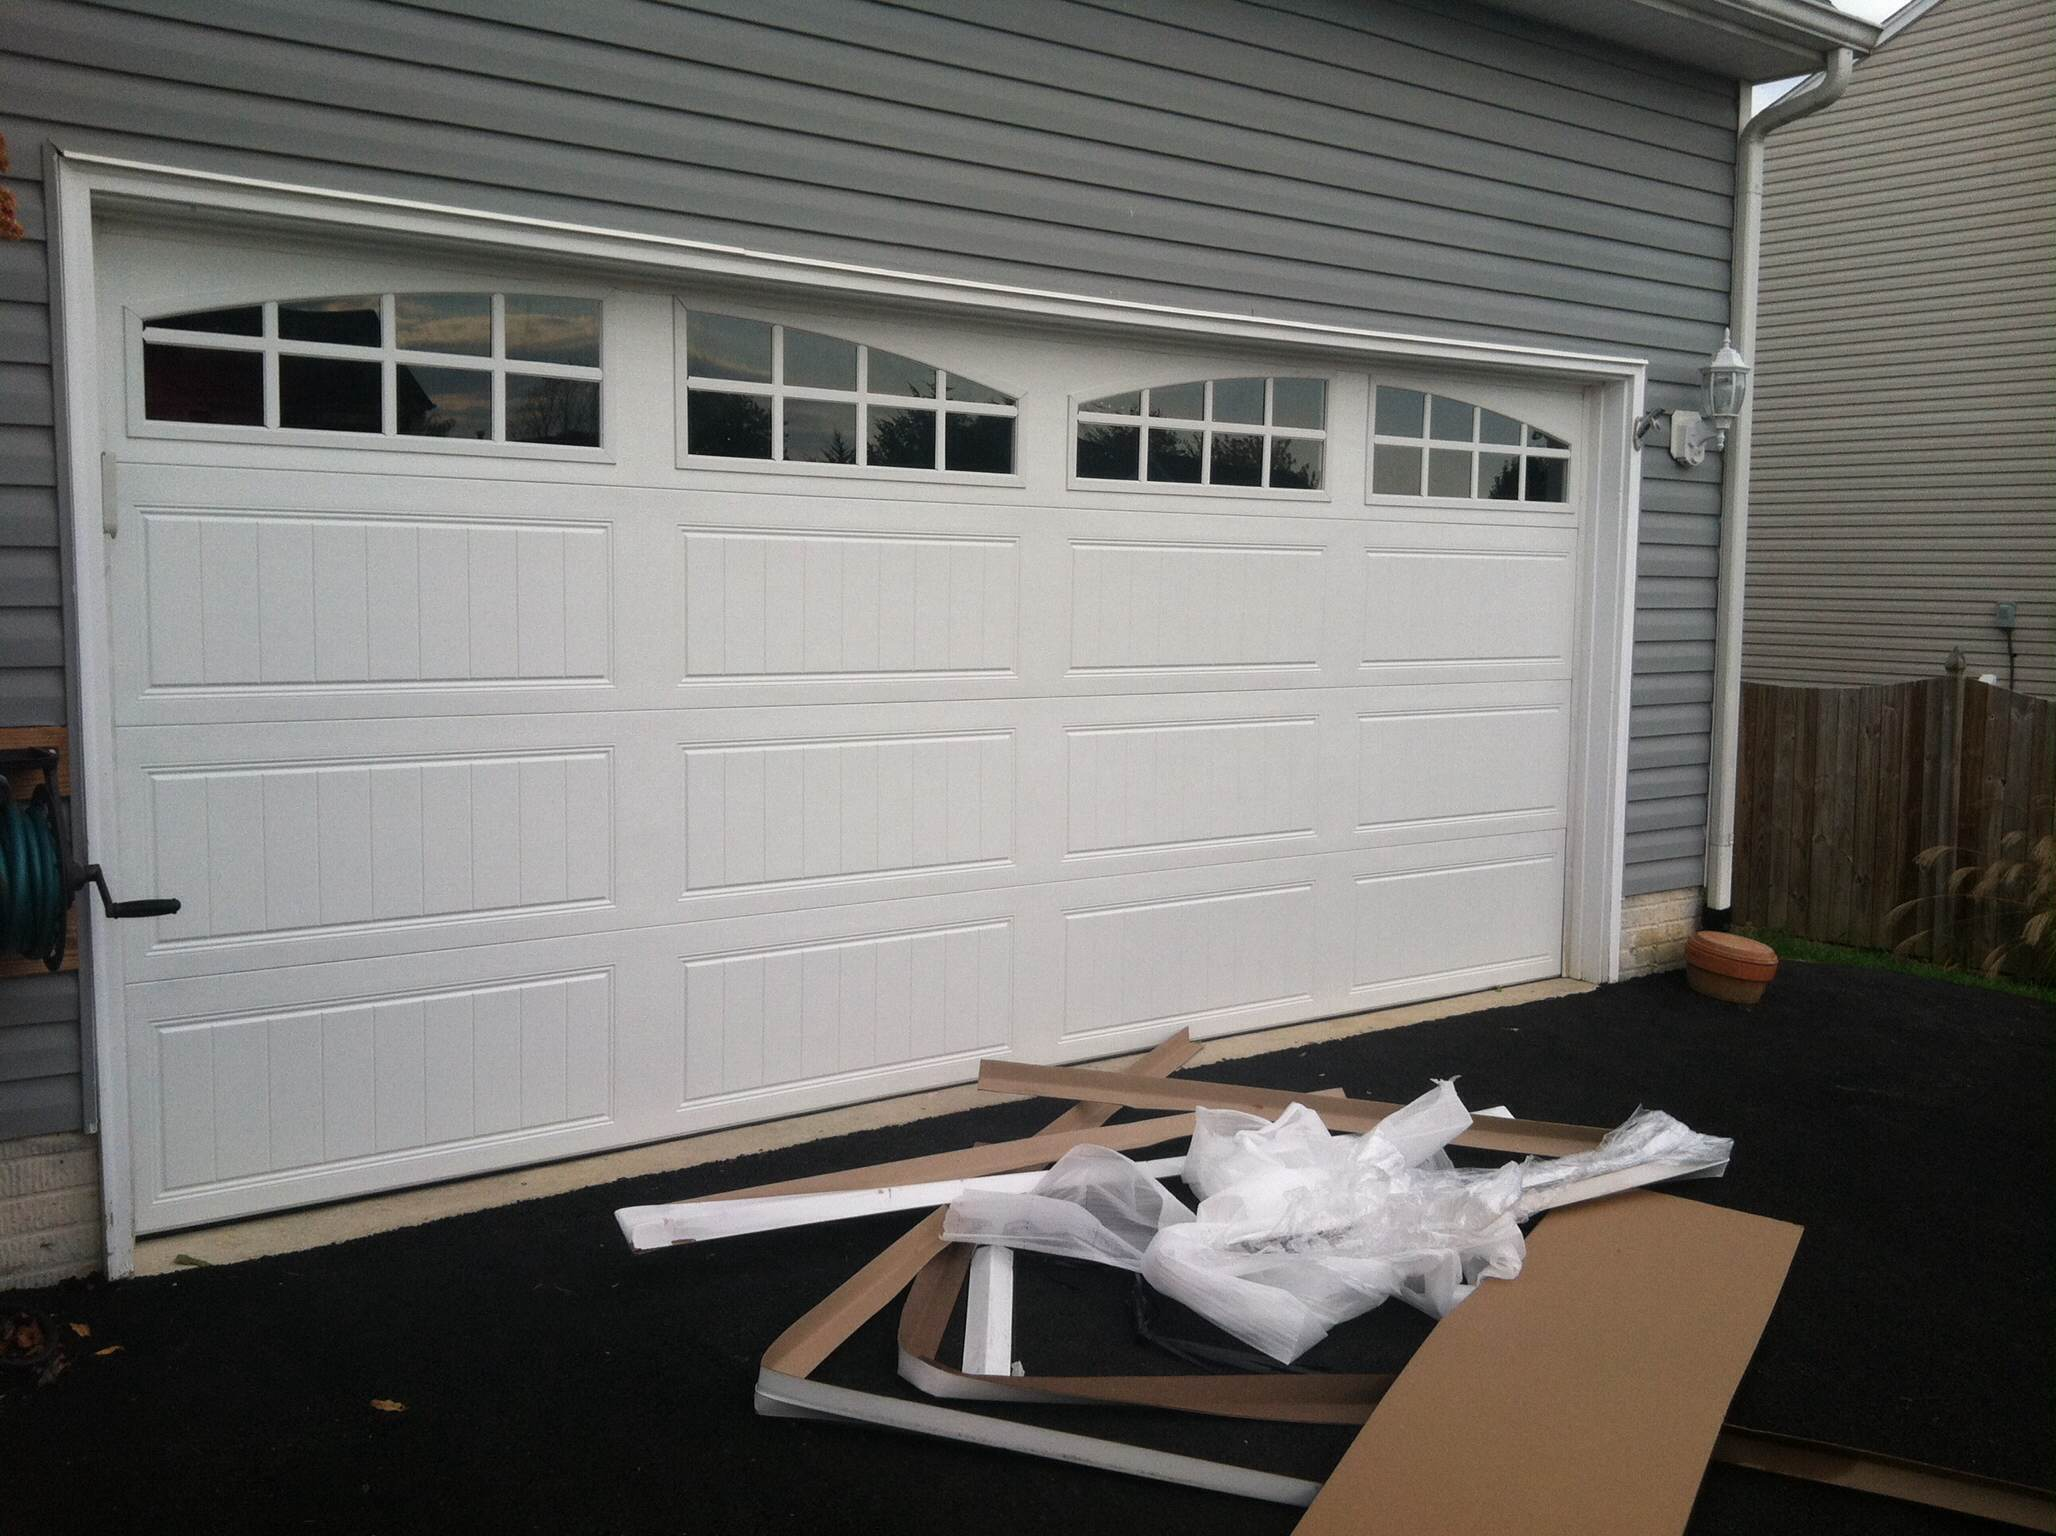 Garage door repair herndon va 703543 9748 10 off garage repair garage door spring replacement herndon va rubansaba